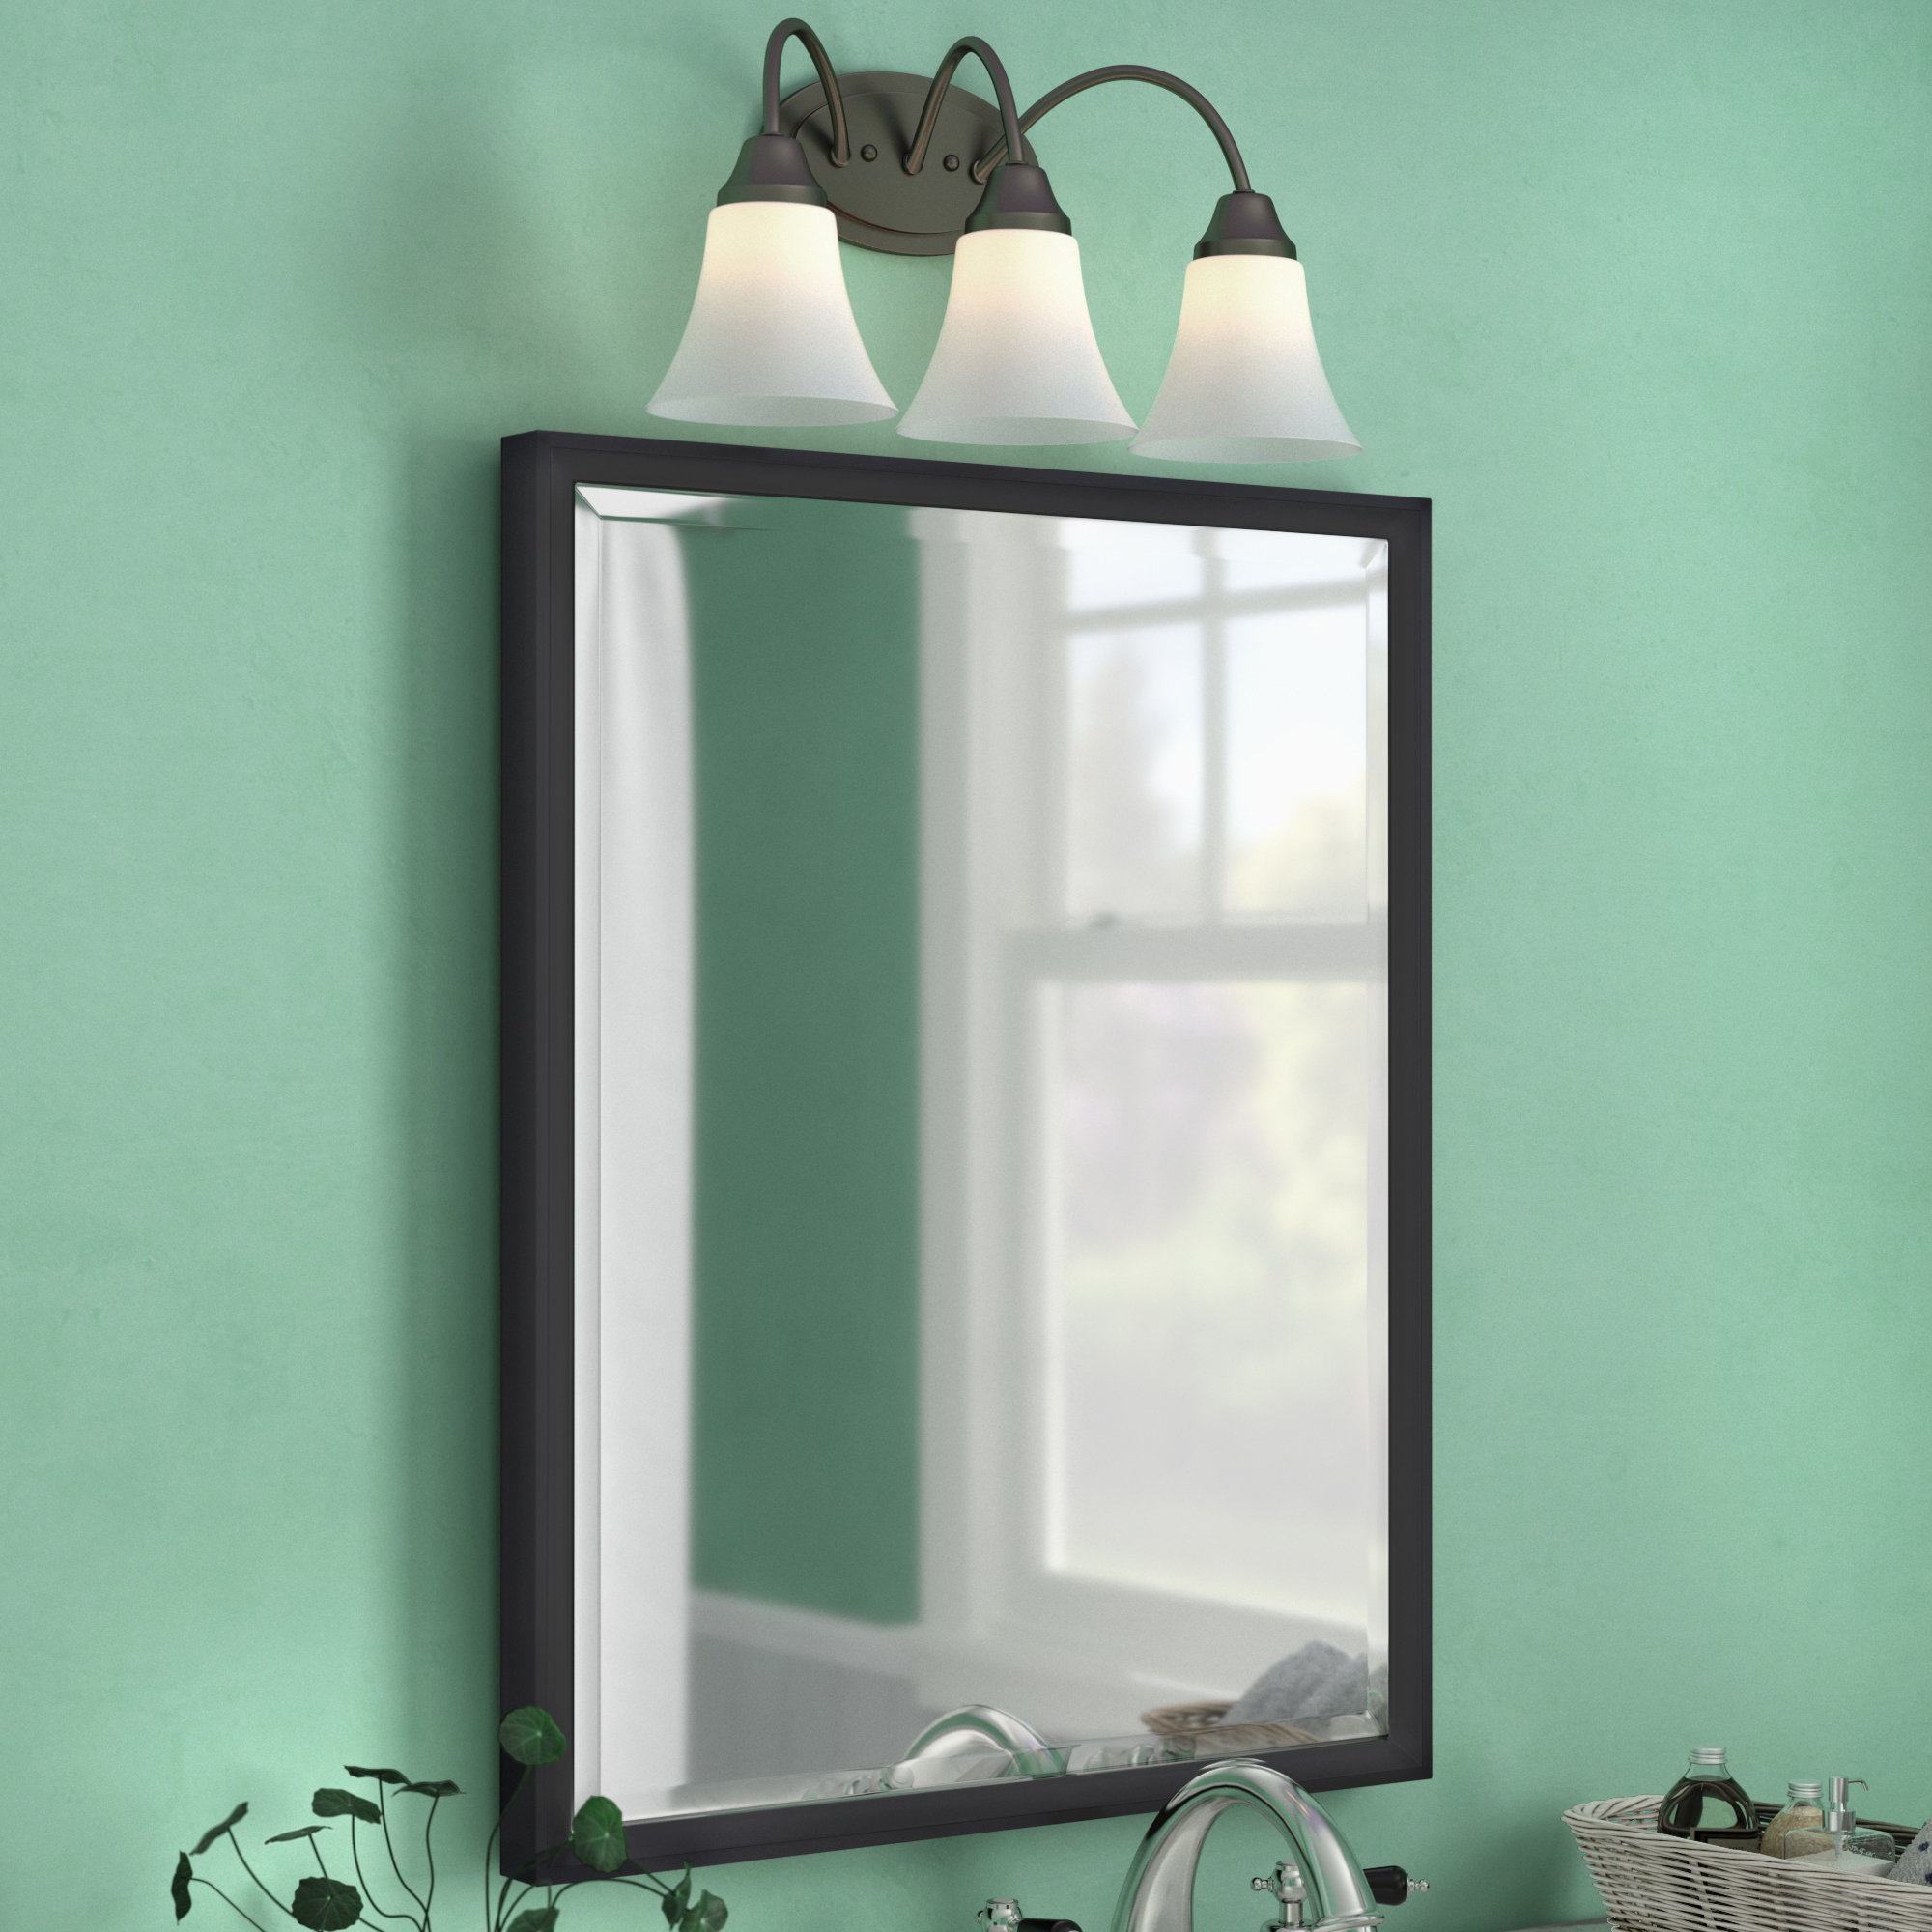 Gatsby Decorative Traditional Beveled Accent Mirror With Traditional Beveled Accent Mirrors (View 16 of 30)